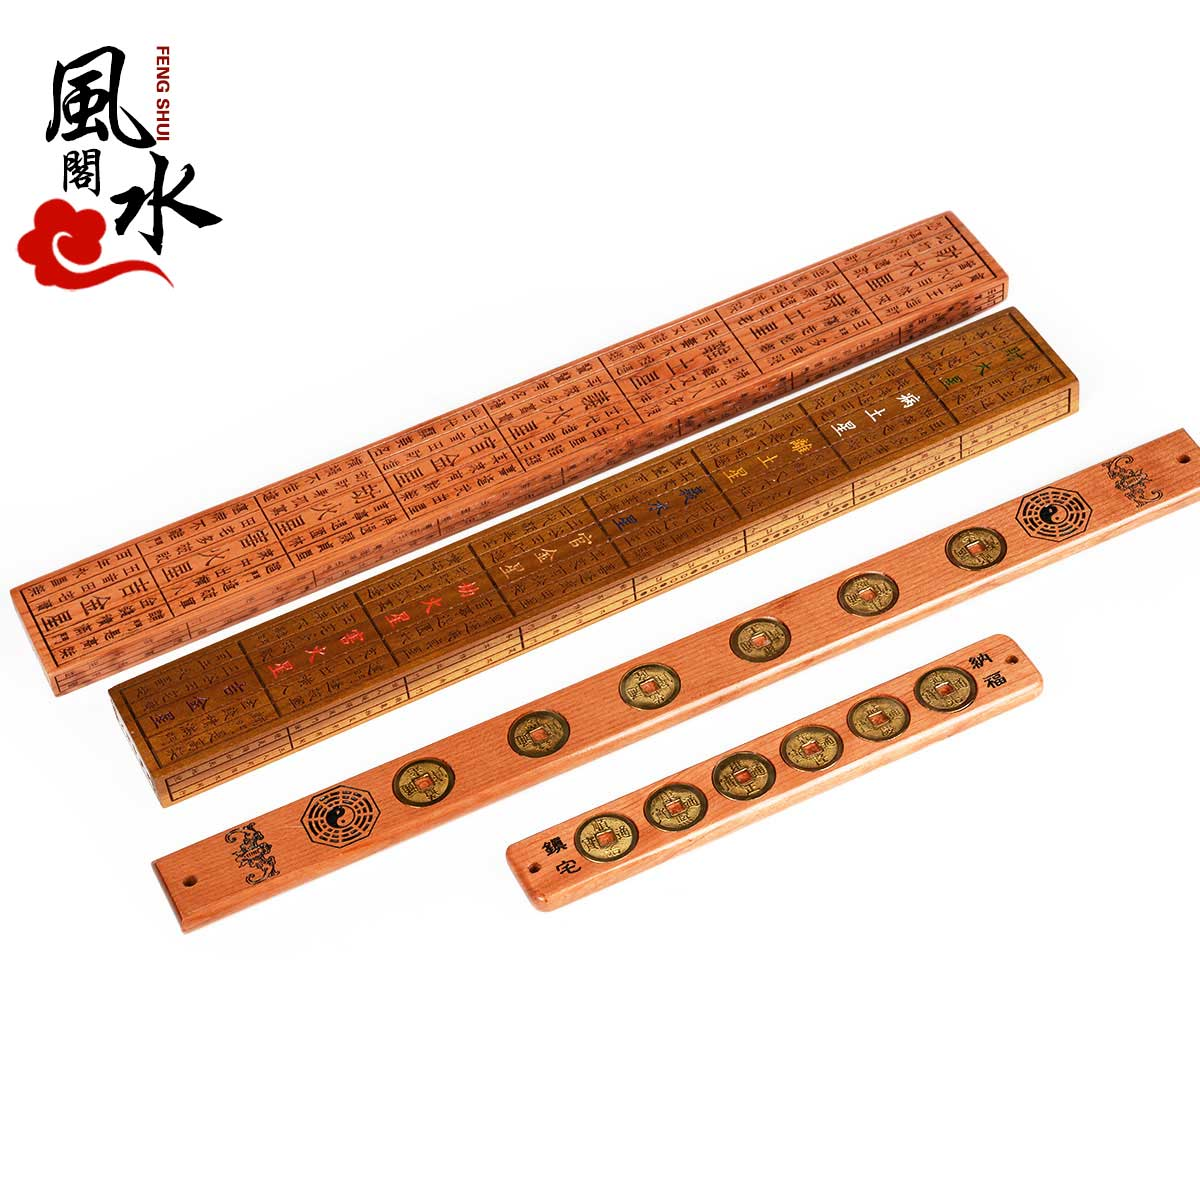 Feng shui court opening mahogany six emperor 46 carpentry ruler feng shui ruler lubanga foot woodiness mantra lucky shipping